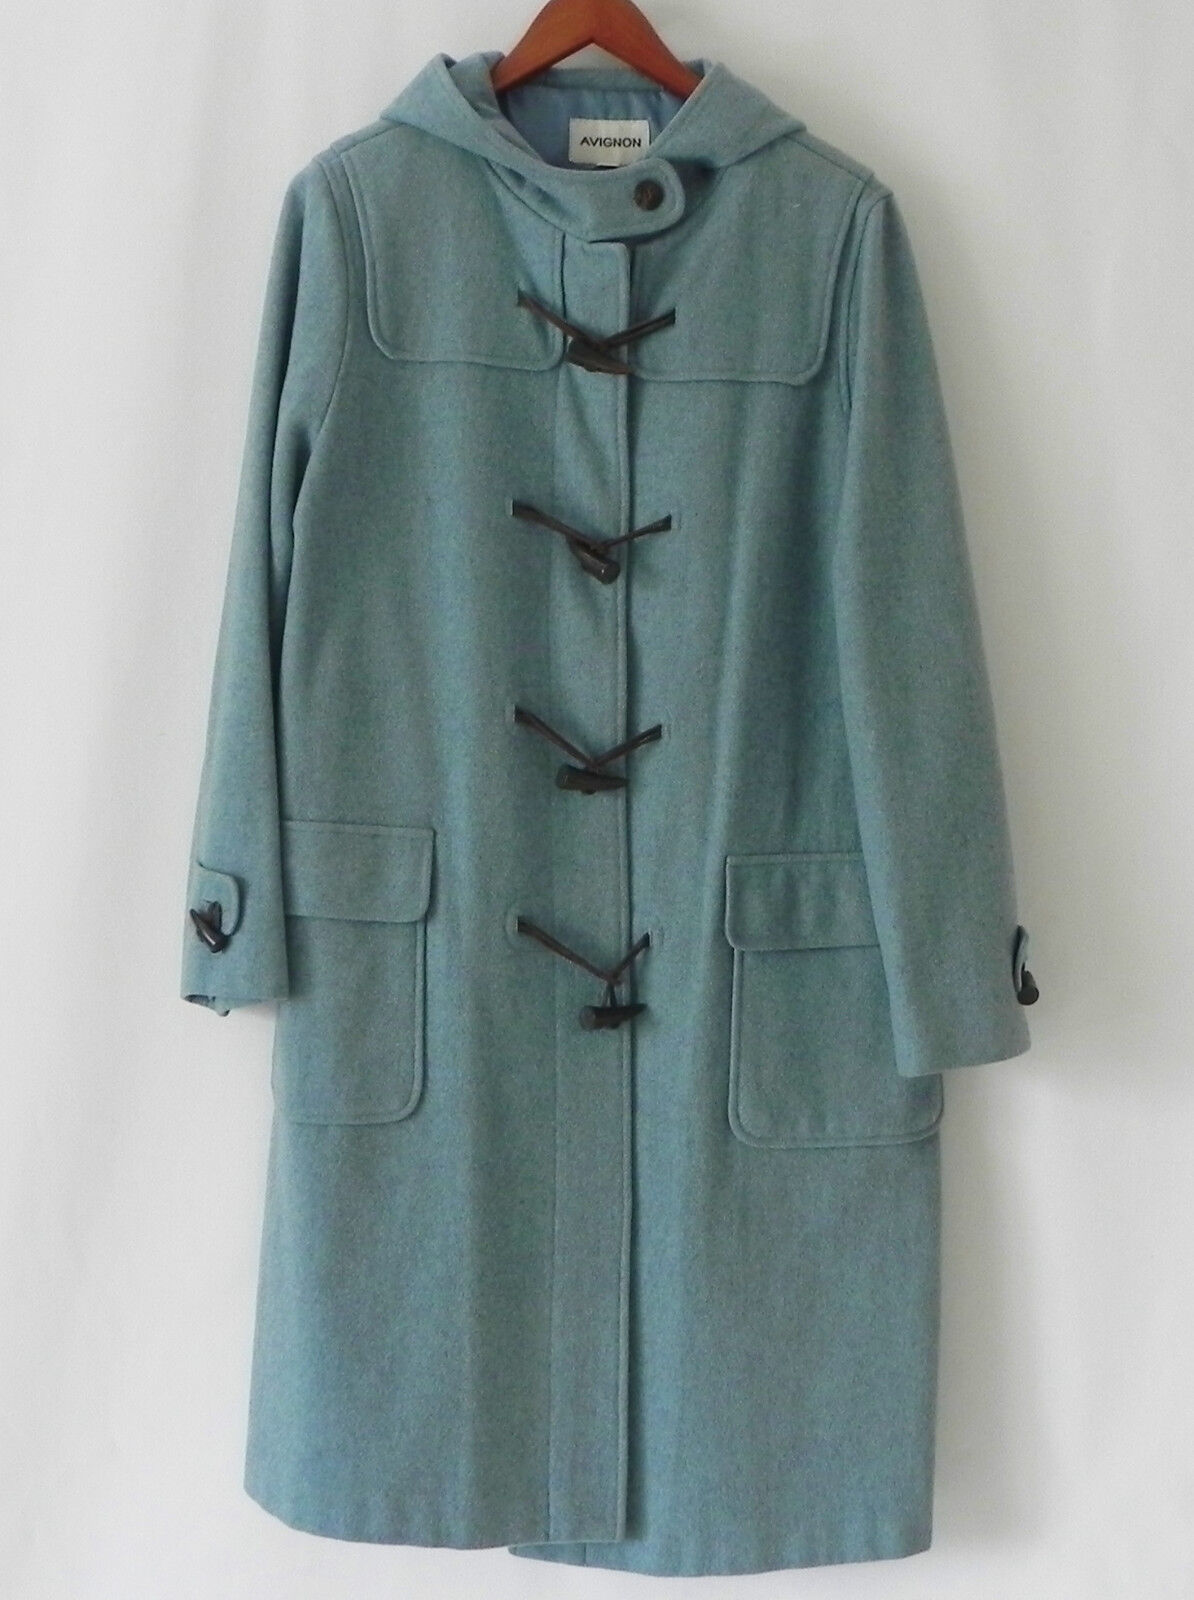 Avignon Duffle Coat 100% Wool Light bluee Hodded Size L XL